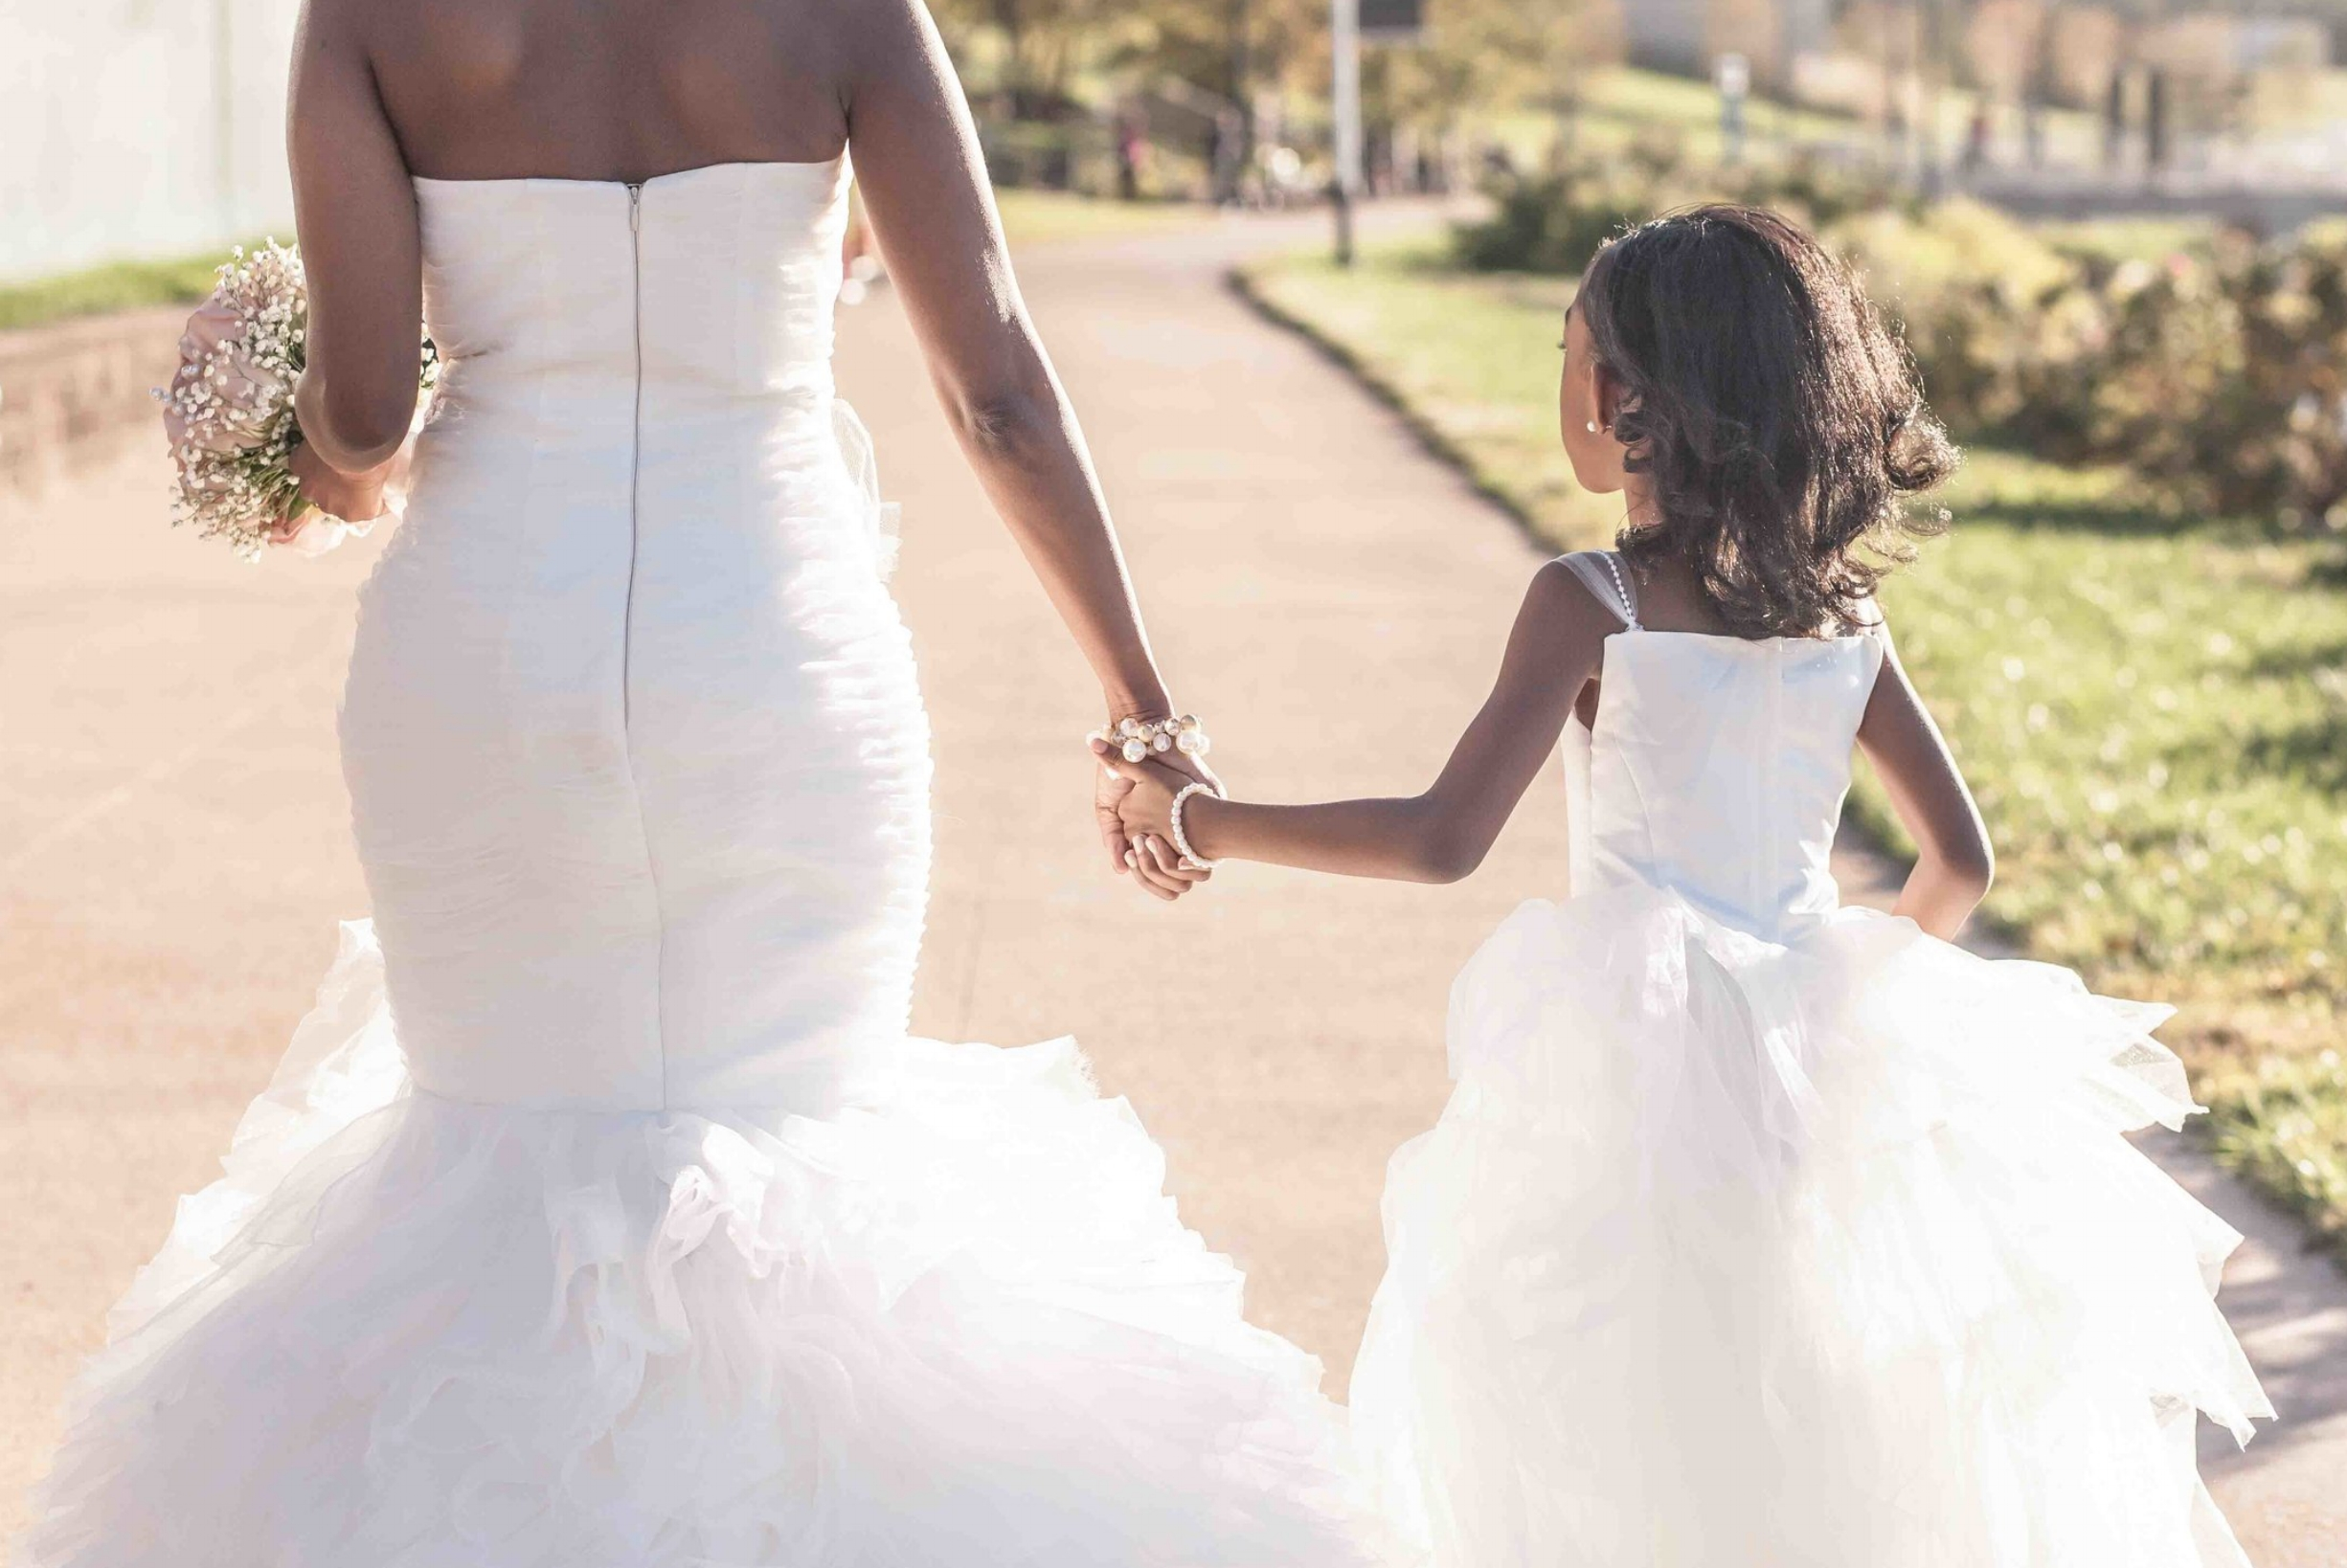 Tell Your Story - Interested in sharing your wedding story with others? Ask us about becoming a featured couple on our blog! We love sharing our client stories to inspire others of love and give some helpful hints to the next engaged couple.